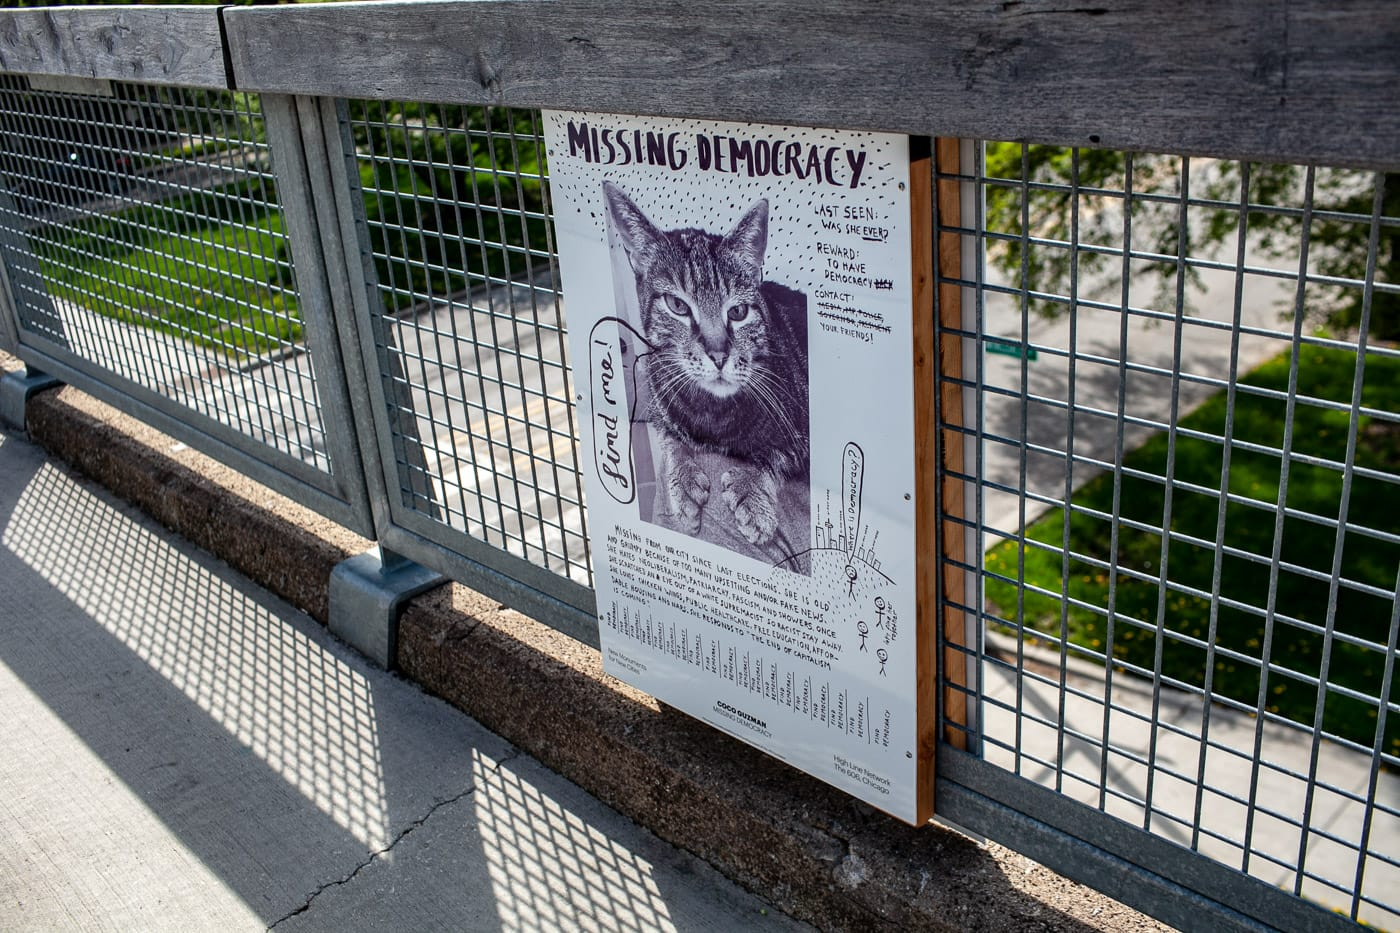 Missing Democracy cat poster - part of New Monuments for New Cities artwork on The 606 in Chicago. | Bloomingdale Trail | the 606 in early spring.